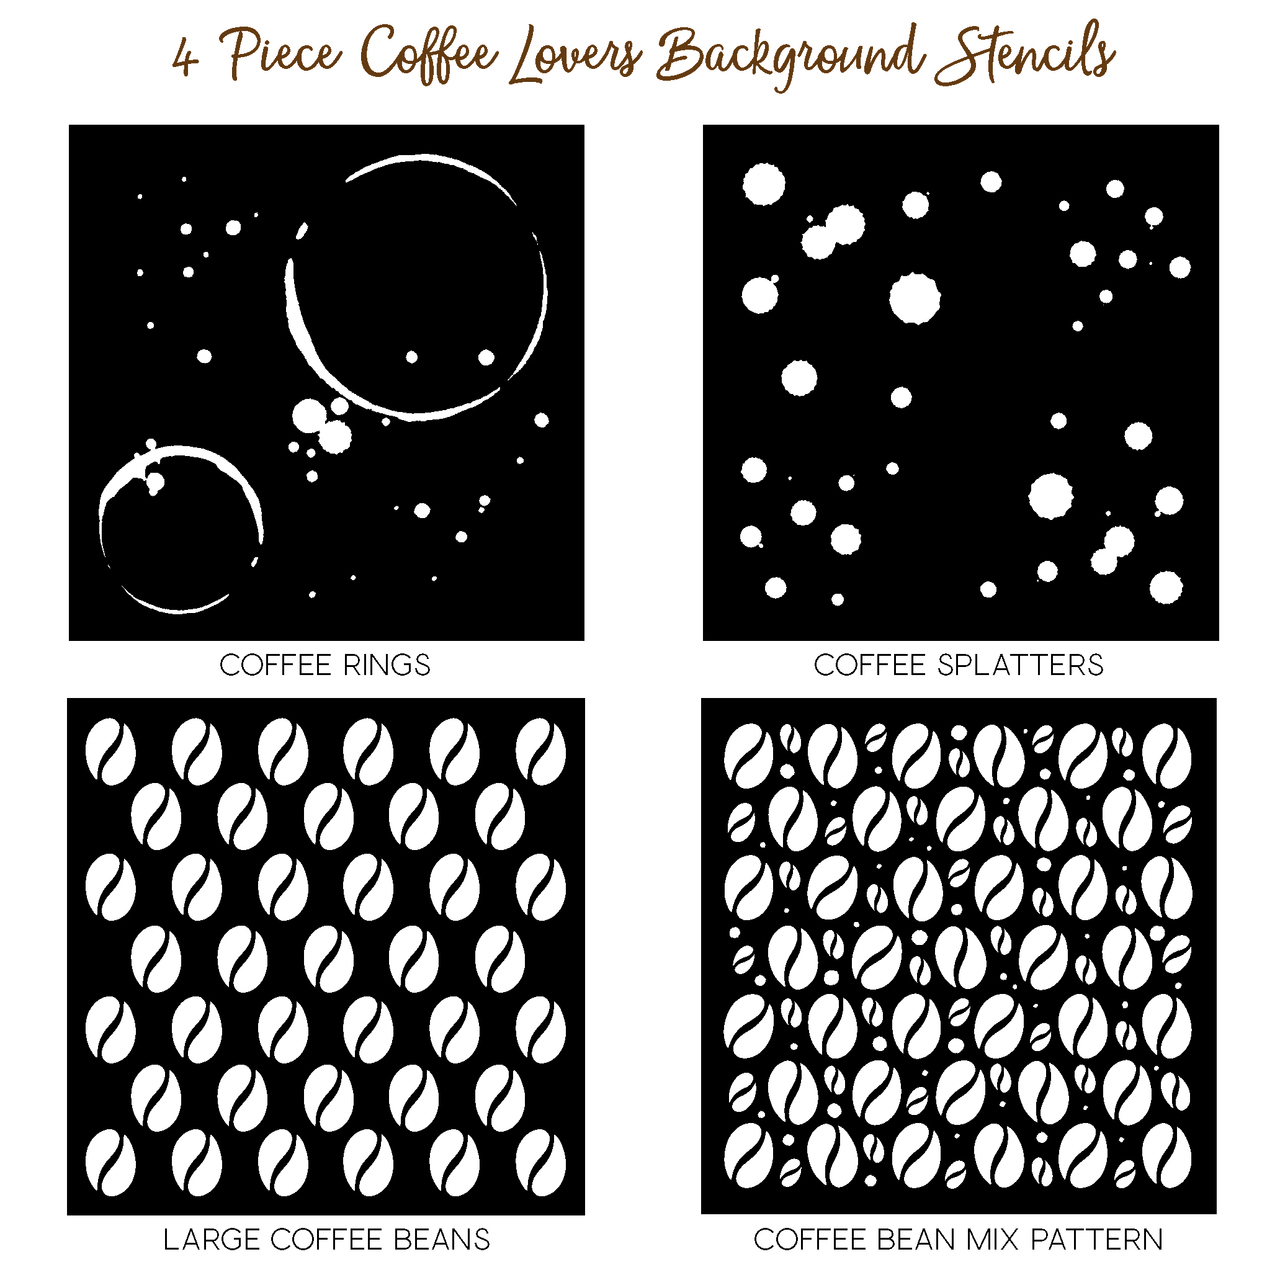 Honeybee Bee Stamps - Coffee Lovers Background Stencils | Set of 4